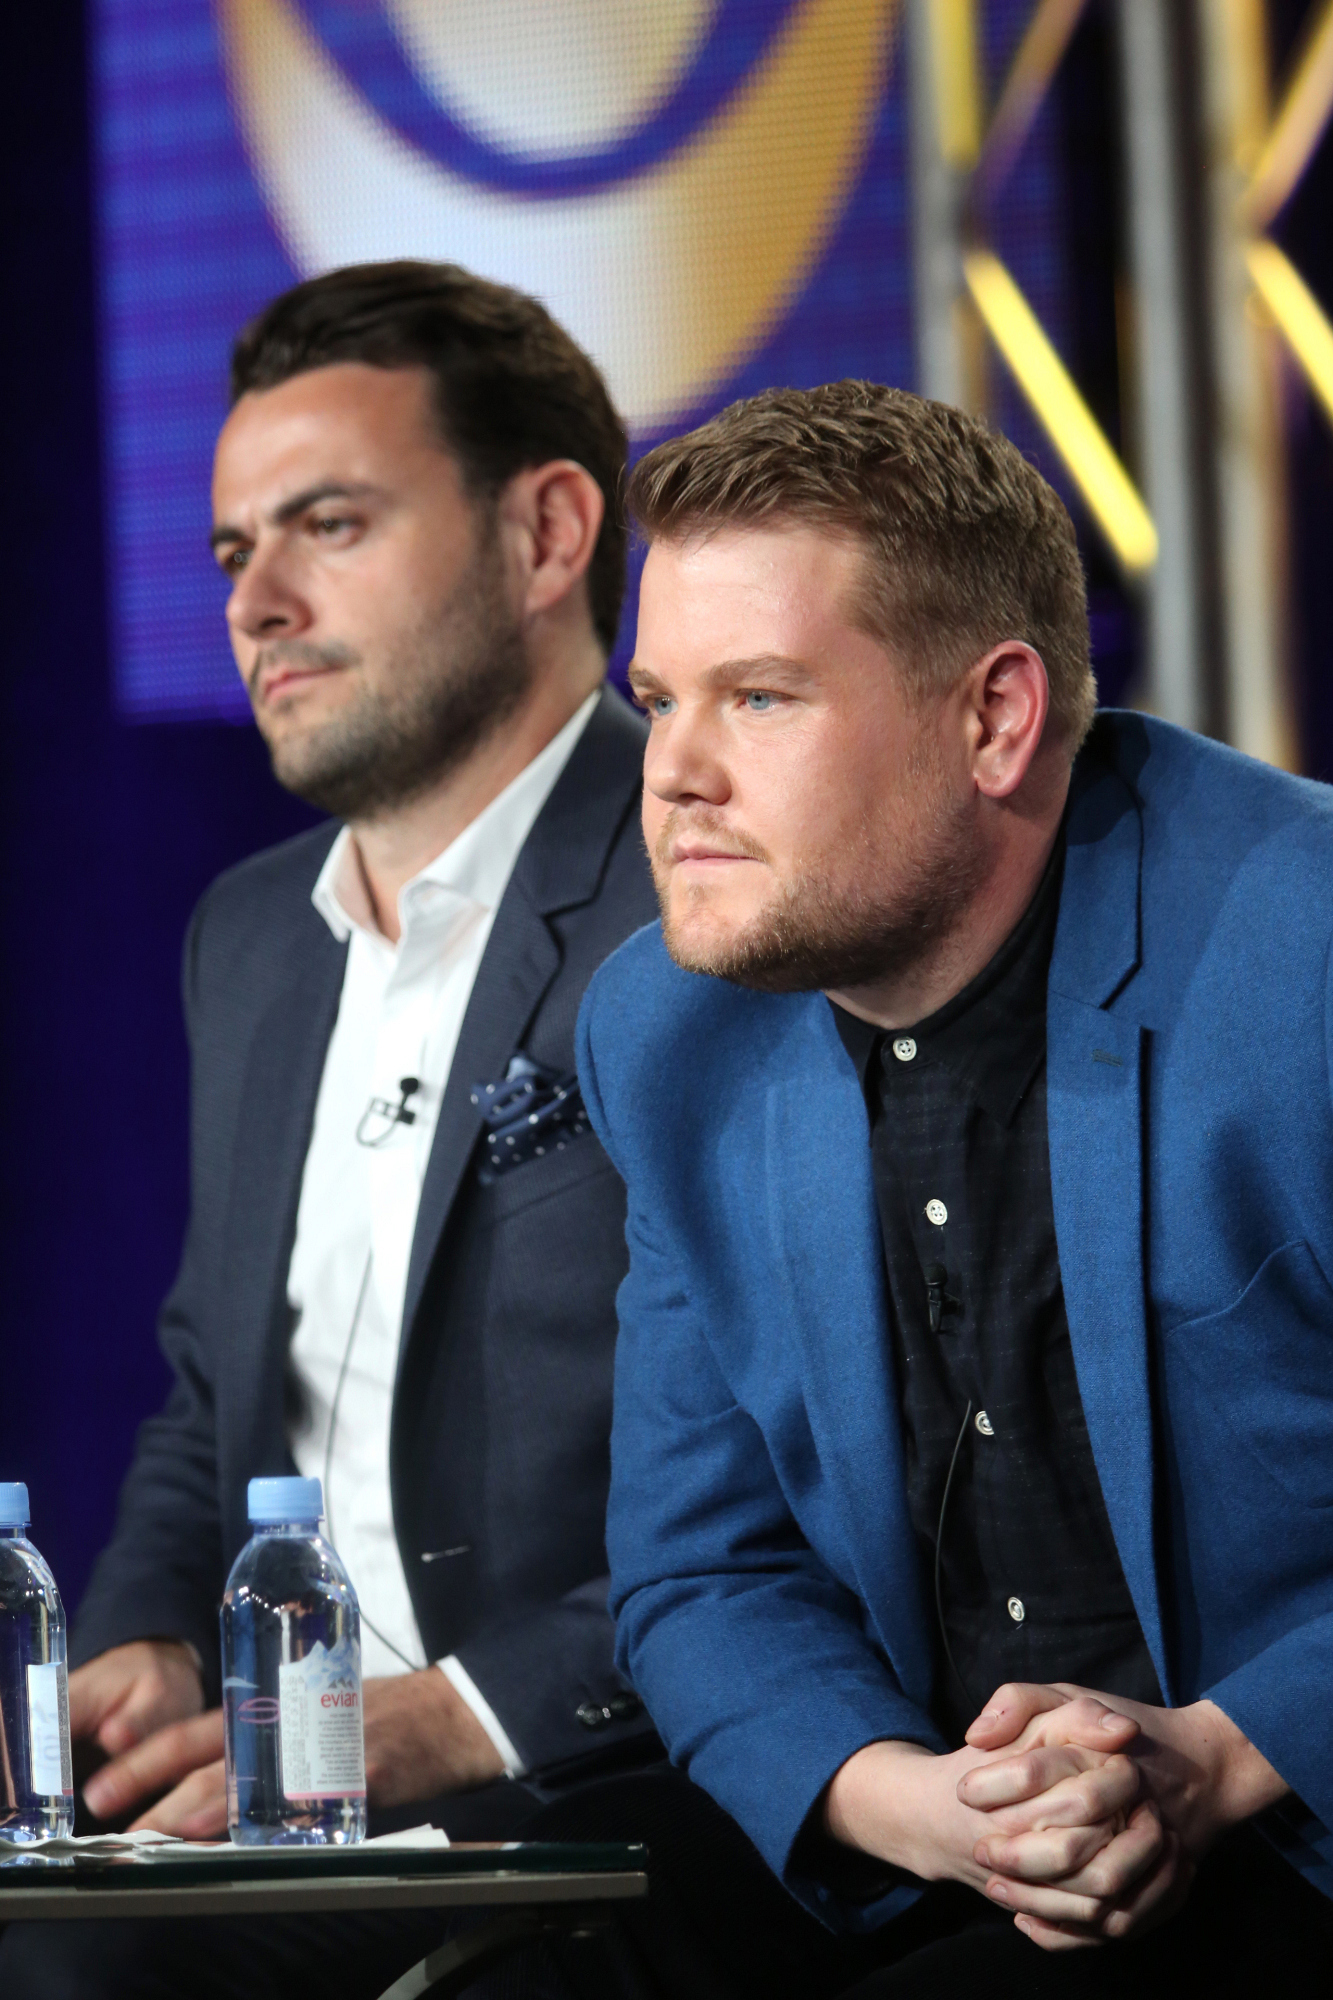 Executive Producer, Ben Winston and Host, James Corden